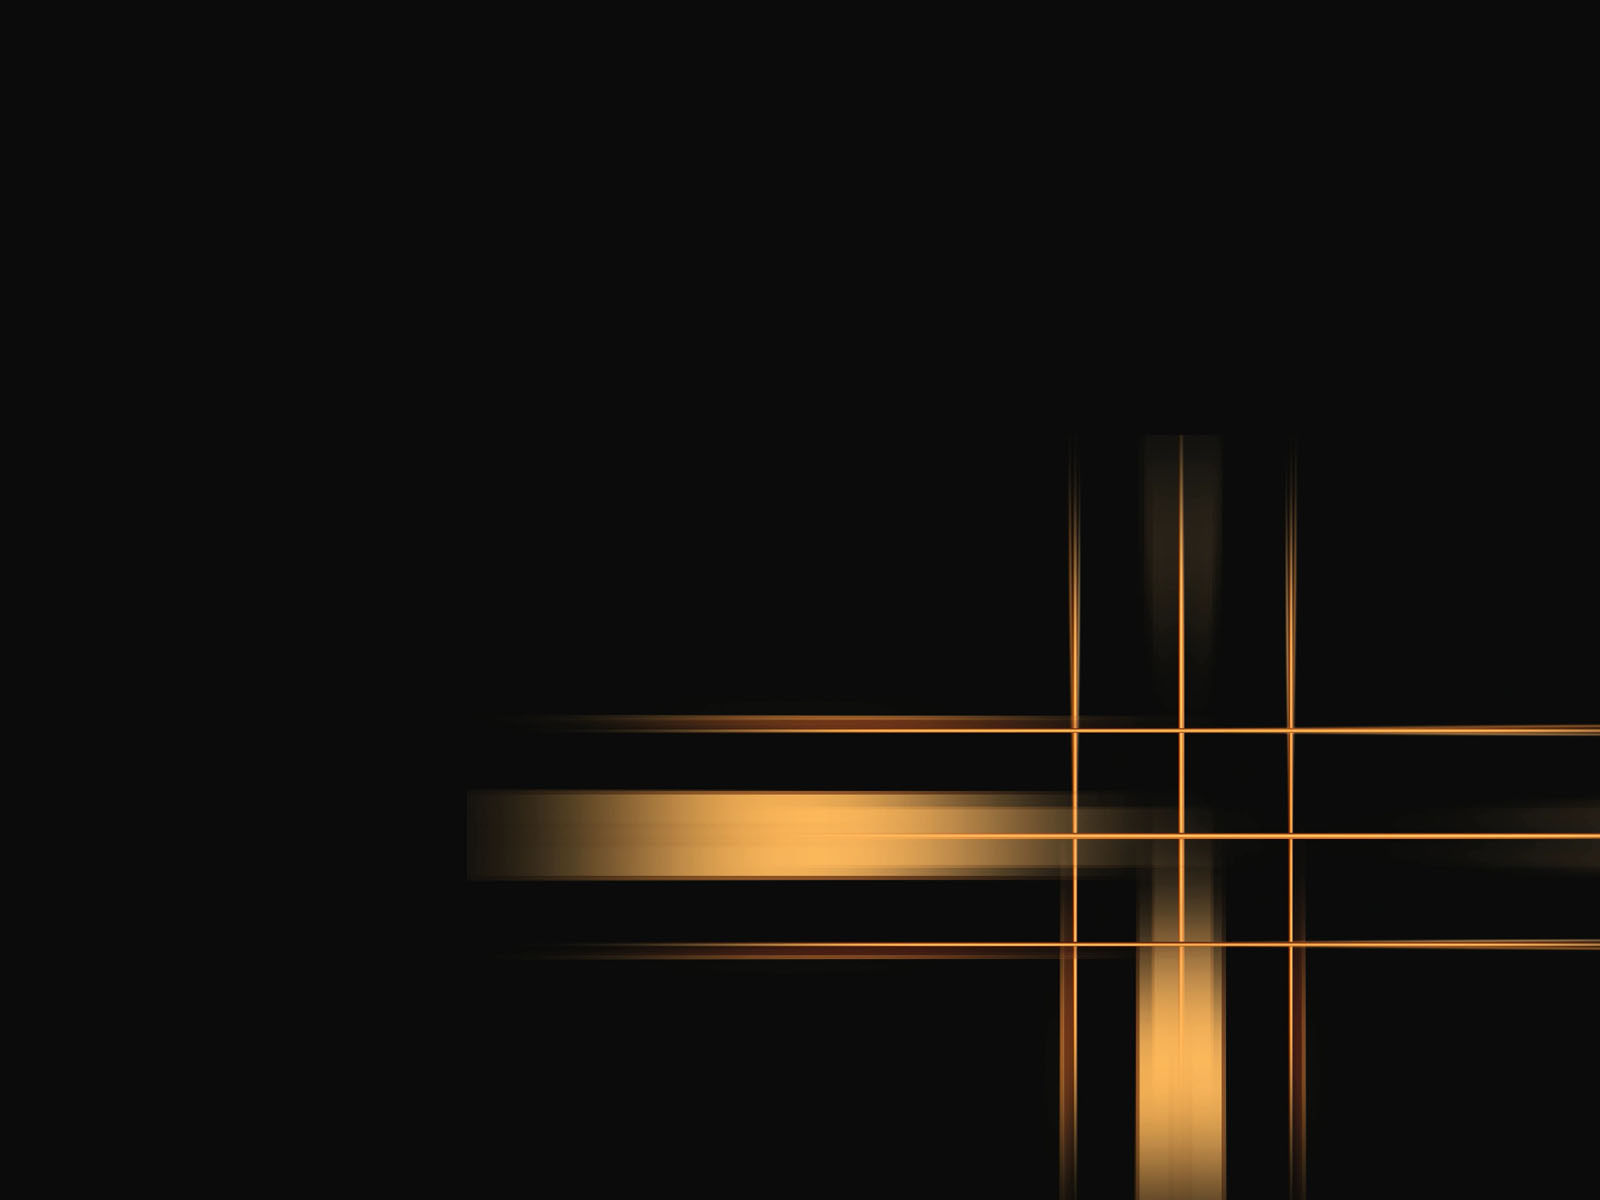 abstract gold lines backgrounds abstract black yellow